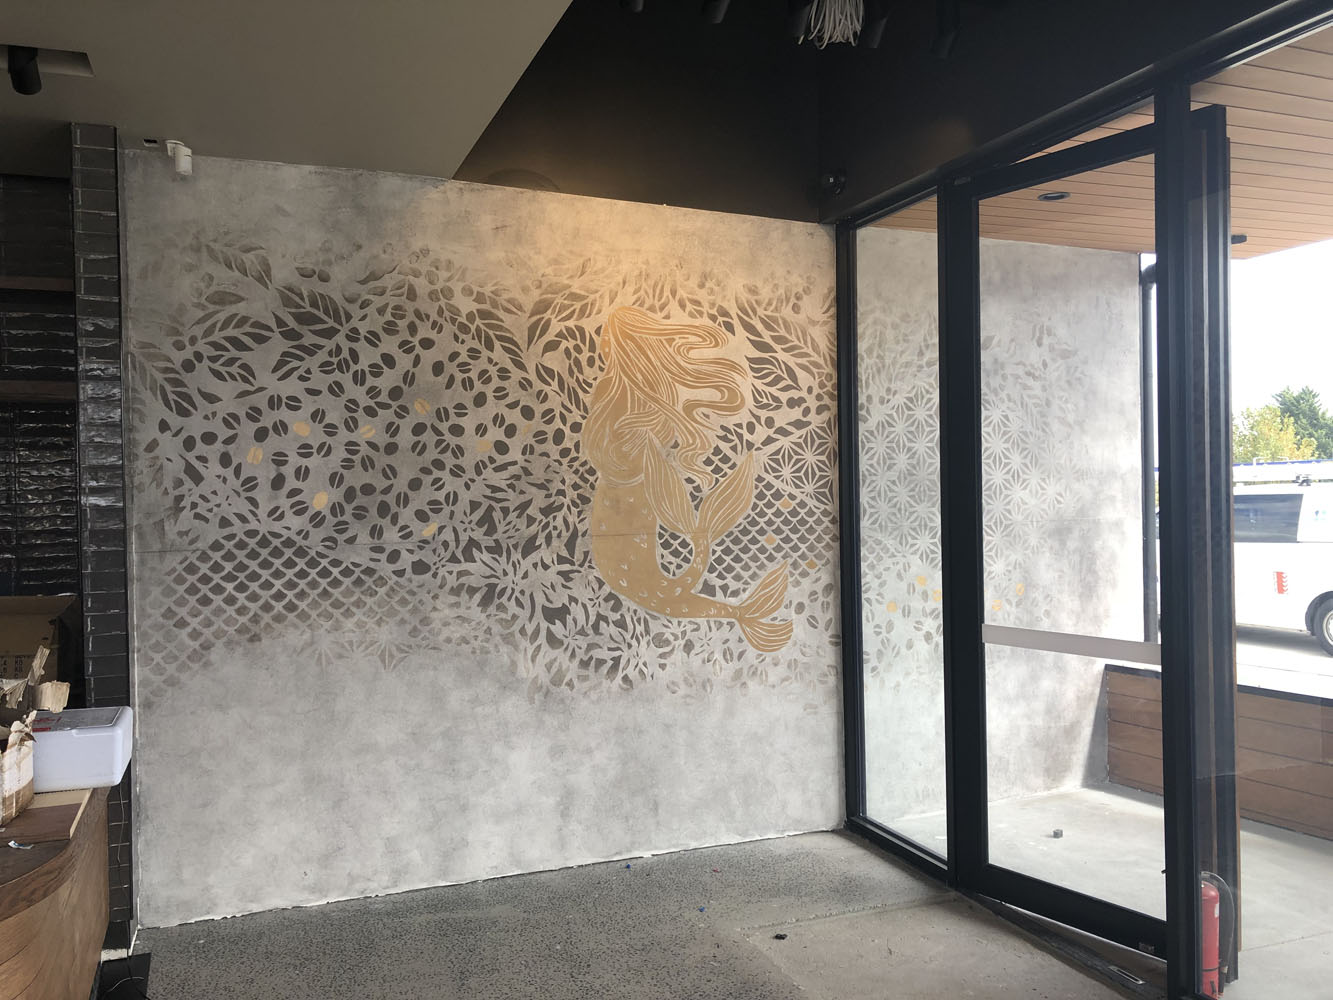 the-art-of-wall-starbucks-coolaroo-siren-wall-art-mural-3